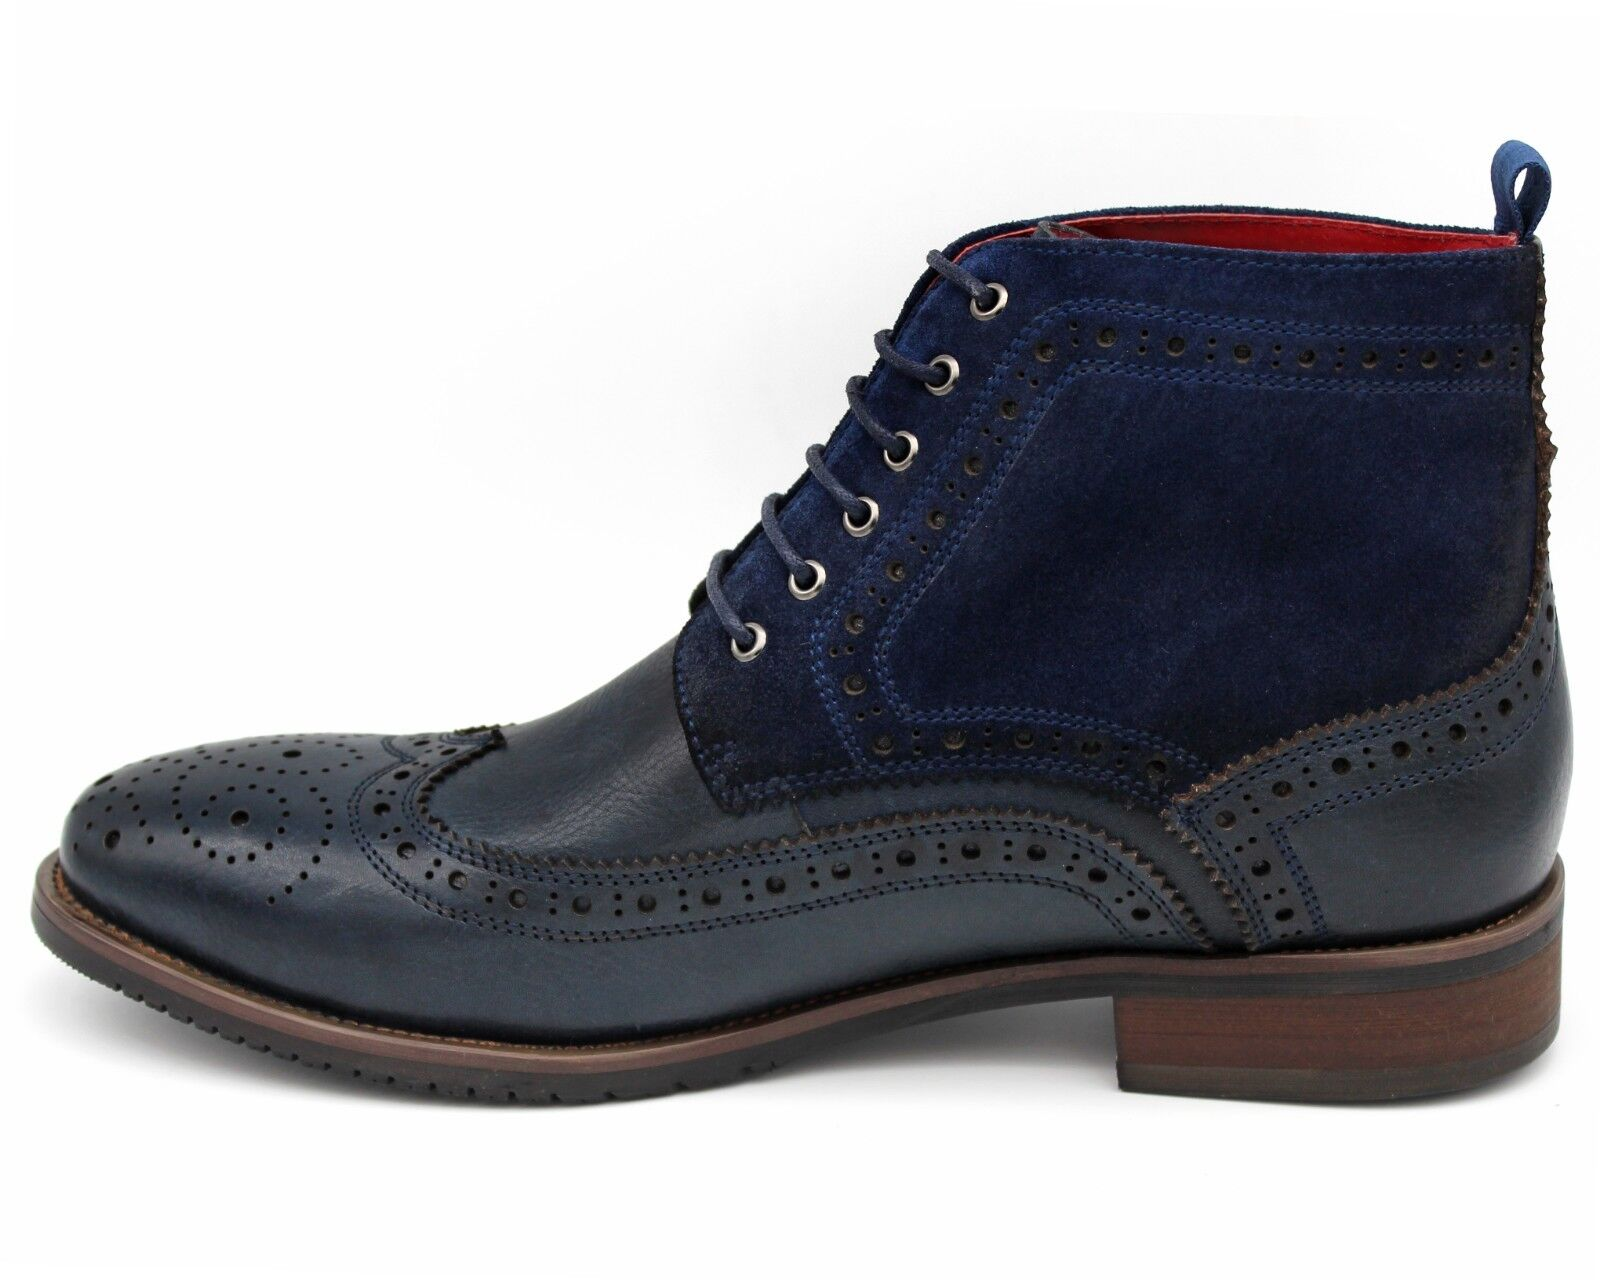 S52M UK 10 MENS NAVY blueE COMBAT BOOT LEATHER LEATHER LEATHER ANKLE MILITARY LACE UP BROGUE 44 1eae0c